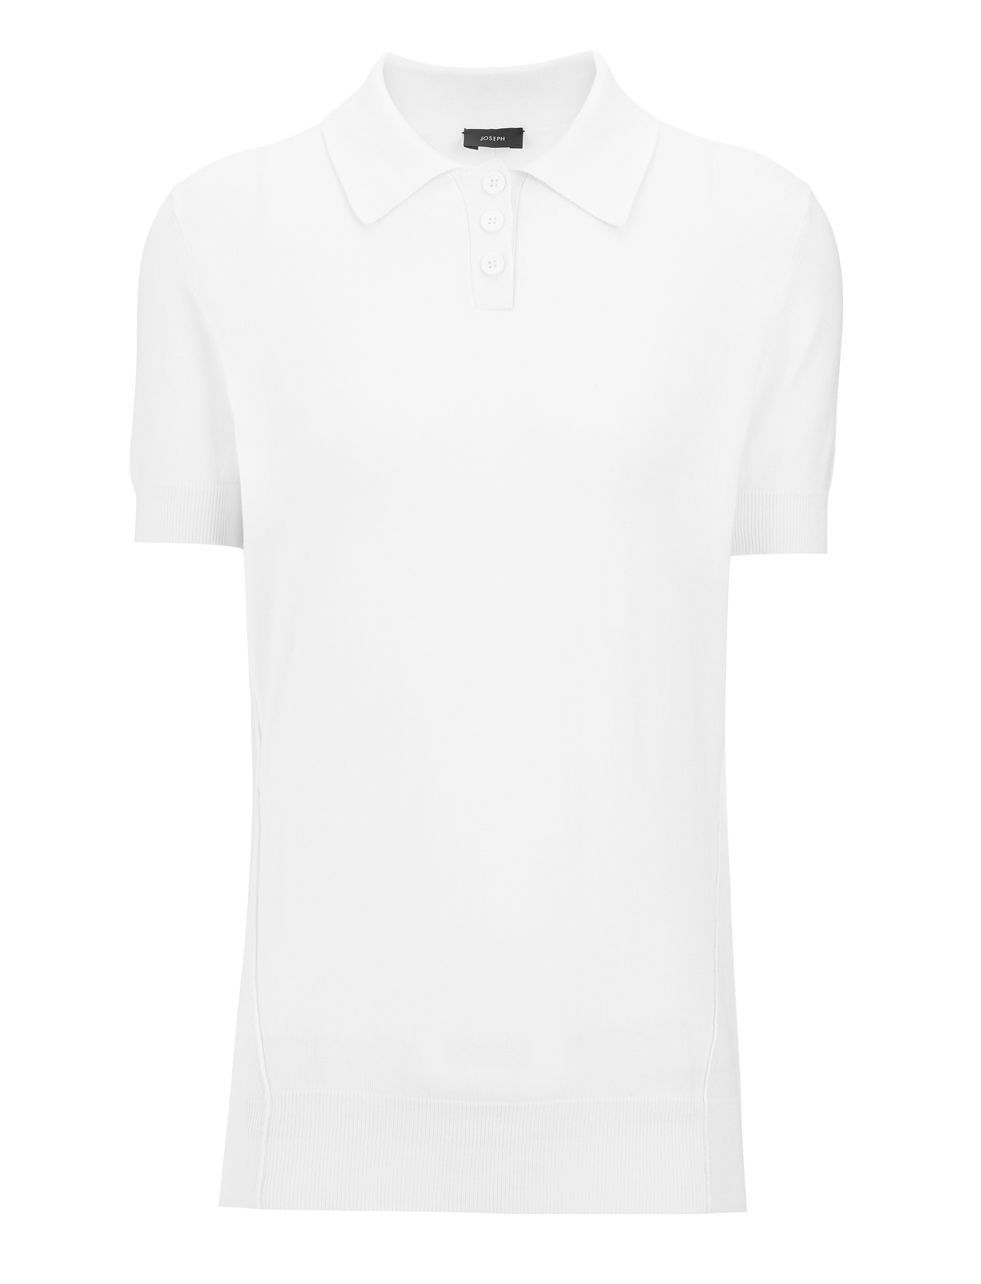 Fine Silk Polo In Ecru - neckline: shirt collar/peter pan/zip with opening; pattern: plain; style: polo shirt; predominant colour: white; occasions: casual, creative work; length: standard; fibres: silk - 100%; fit: body skimming; sleeve length: short sleeve; sleeve style: standard; texture group: silky - light; pattern type: fabric; season: a/w 2015; wardrobe: basic